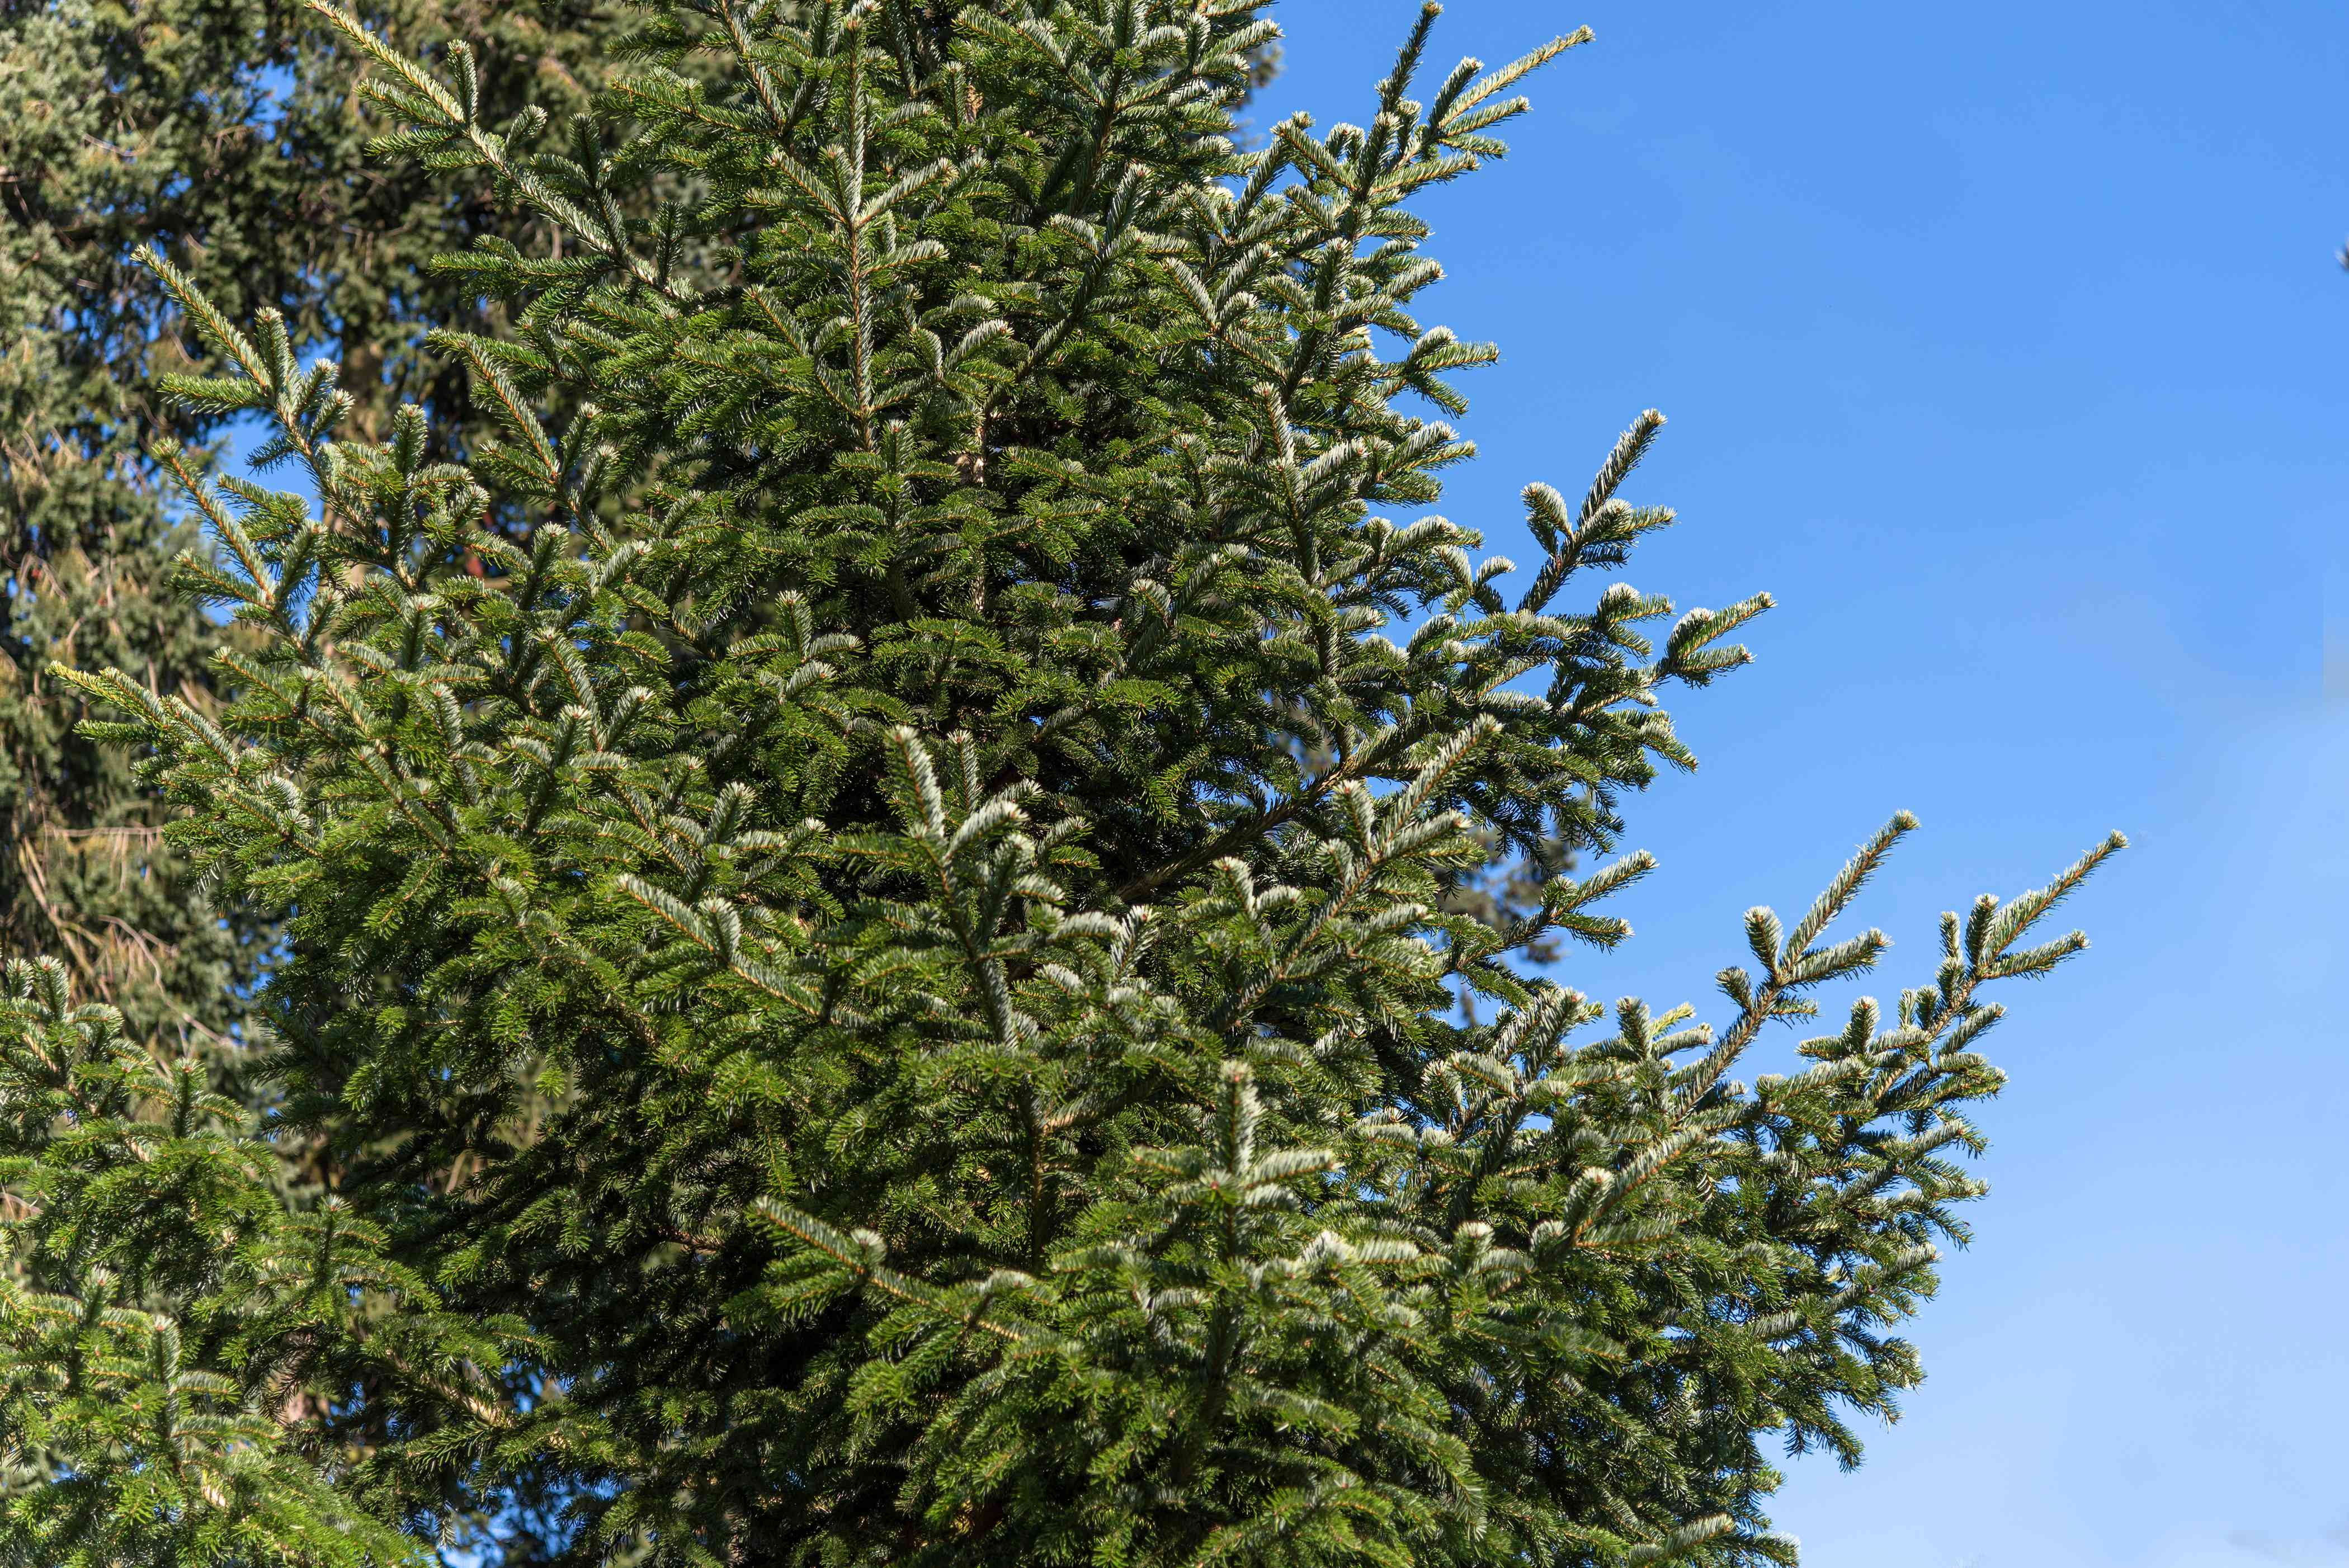 Balsam fir tree with densely-covered branches with gray-green needles against blue sky